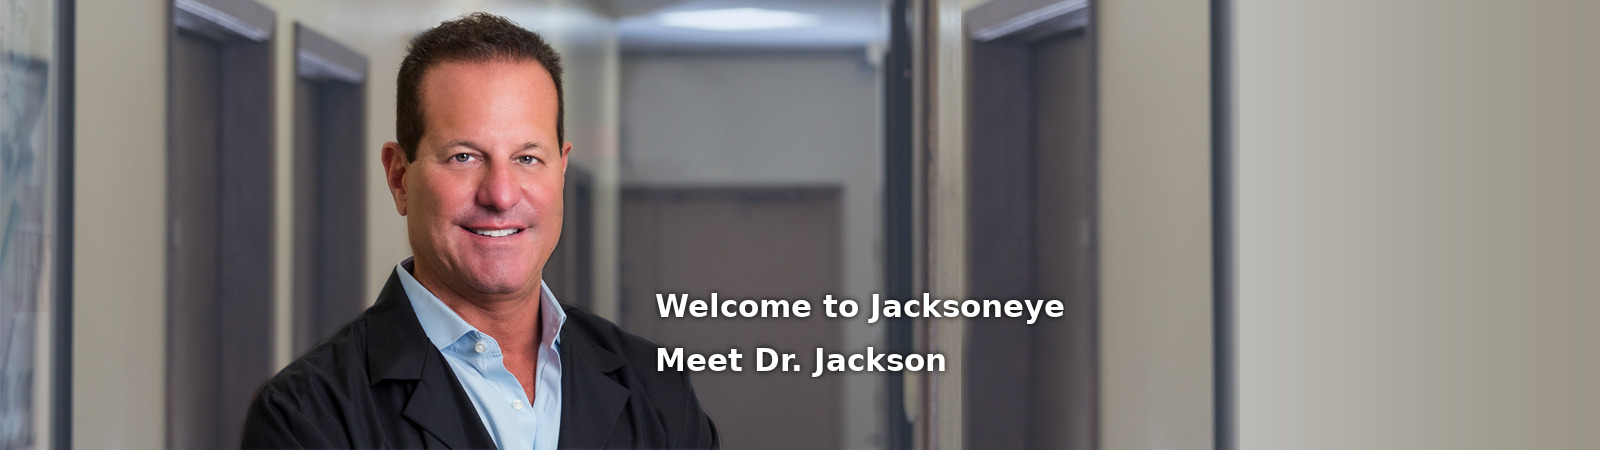 Dr. Mitch A. Jackson from Jacksoneye, Lake Villa, IL